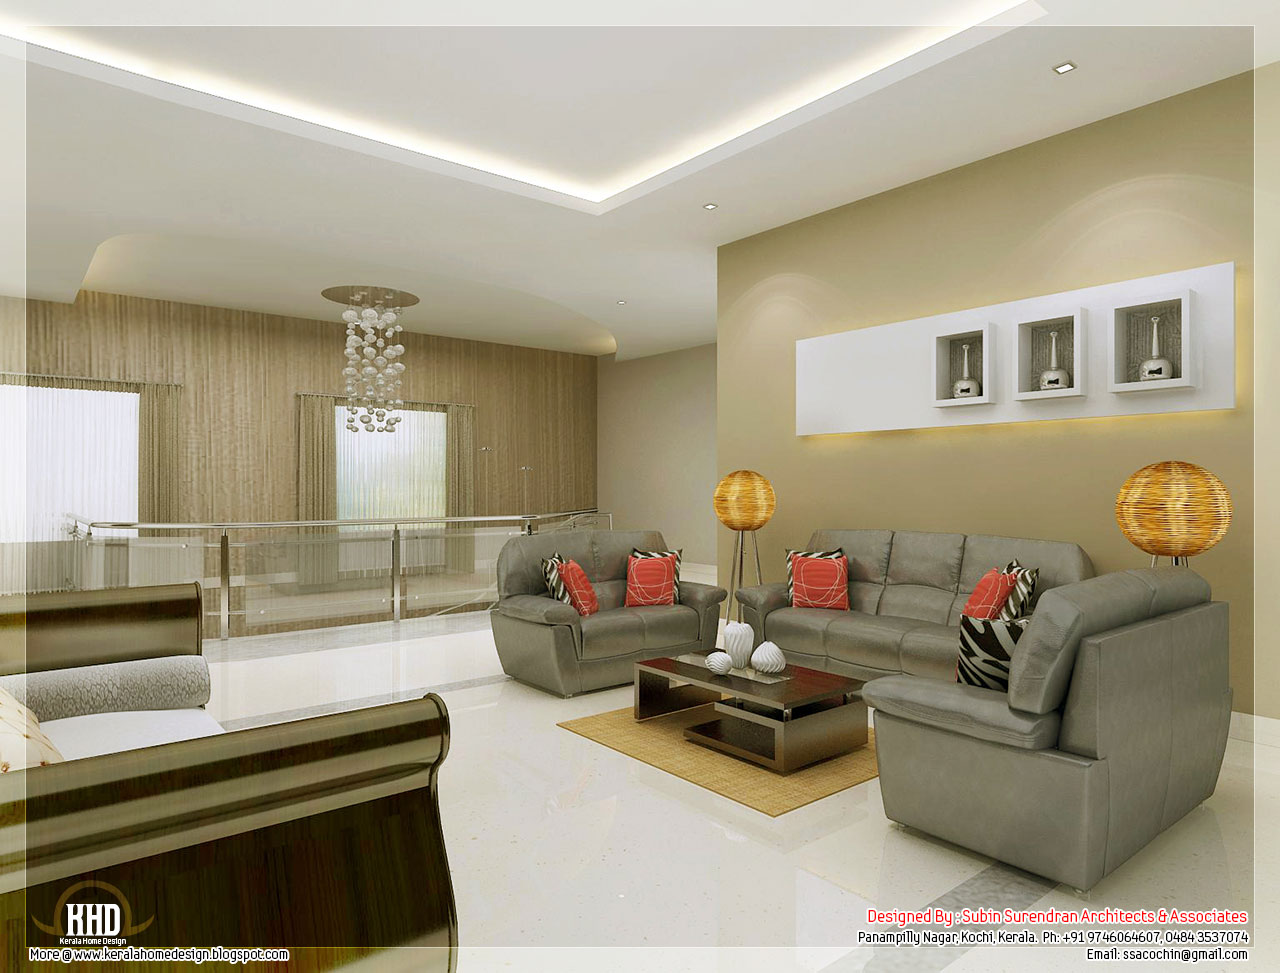 Awesome 3d Interior Renderings  Kerala Home Design And. Lamp Sets For Living Room. Floor Lamp For Living Room. Dining Room With Living Room. Decorating Living Room With Light Gray Walls. Living Room Colours With Brown Sofa. Living Room Bedroom Furniture. Pottery Barn Style Living Room. Outdoor Living Room Idea